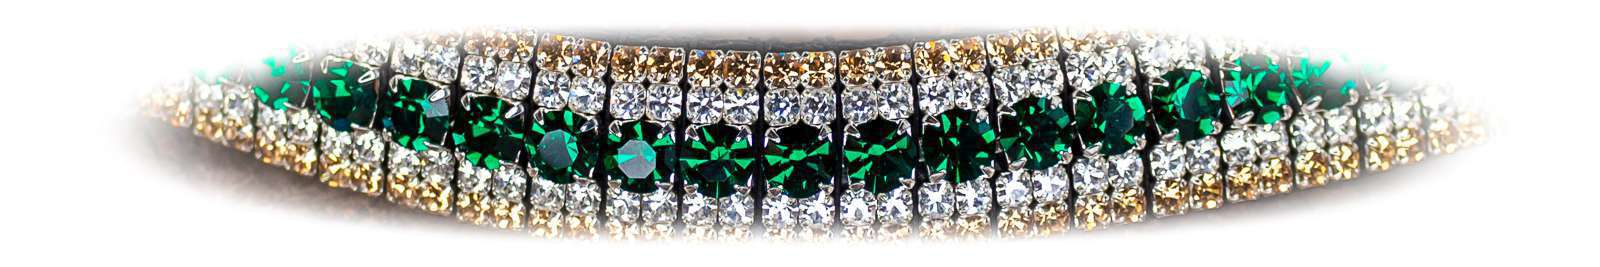 Green crystal bling browbands by Unicorn Browbands